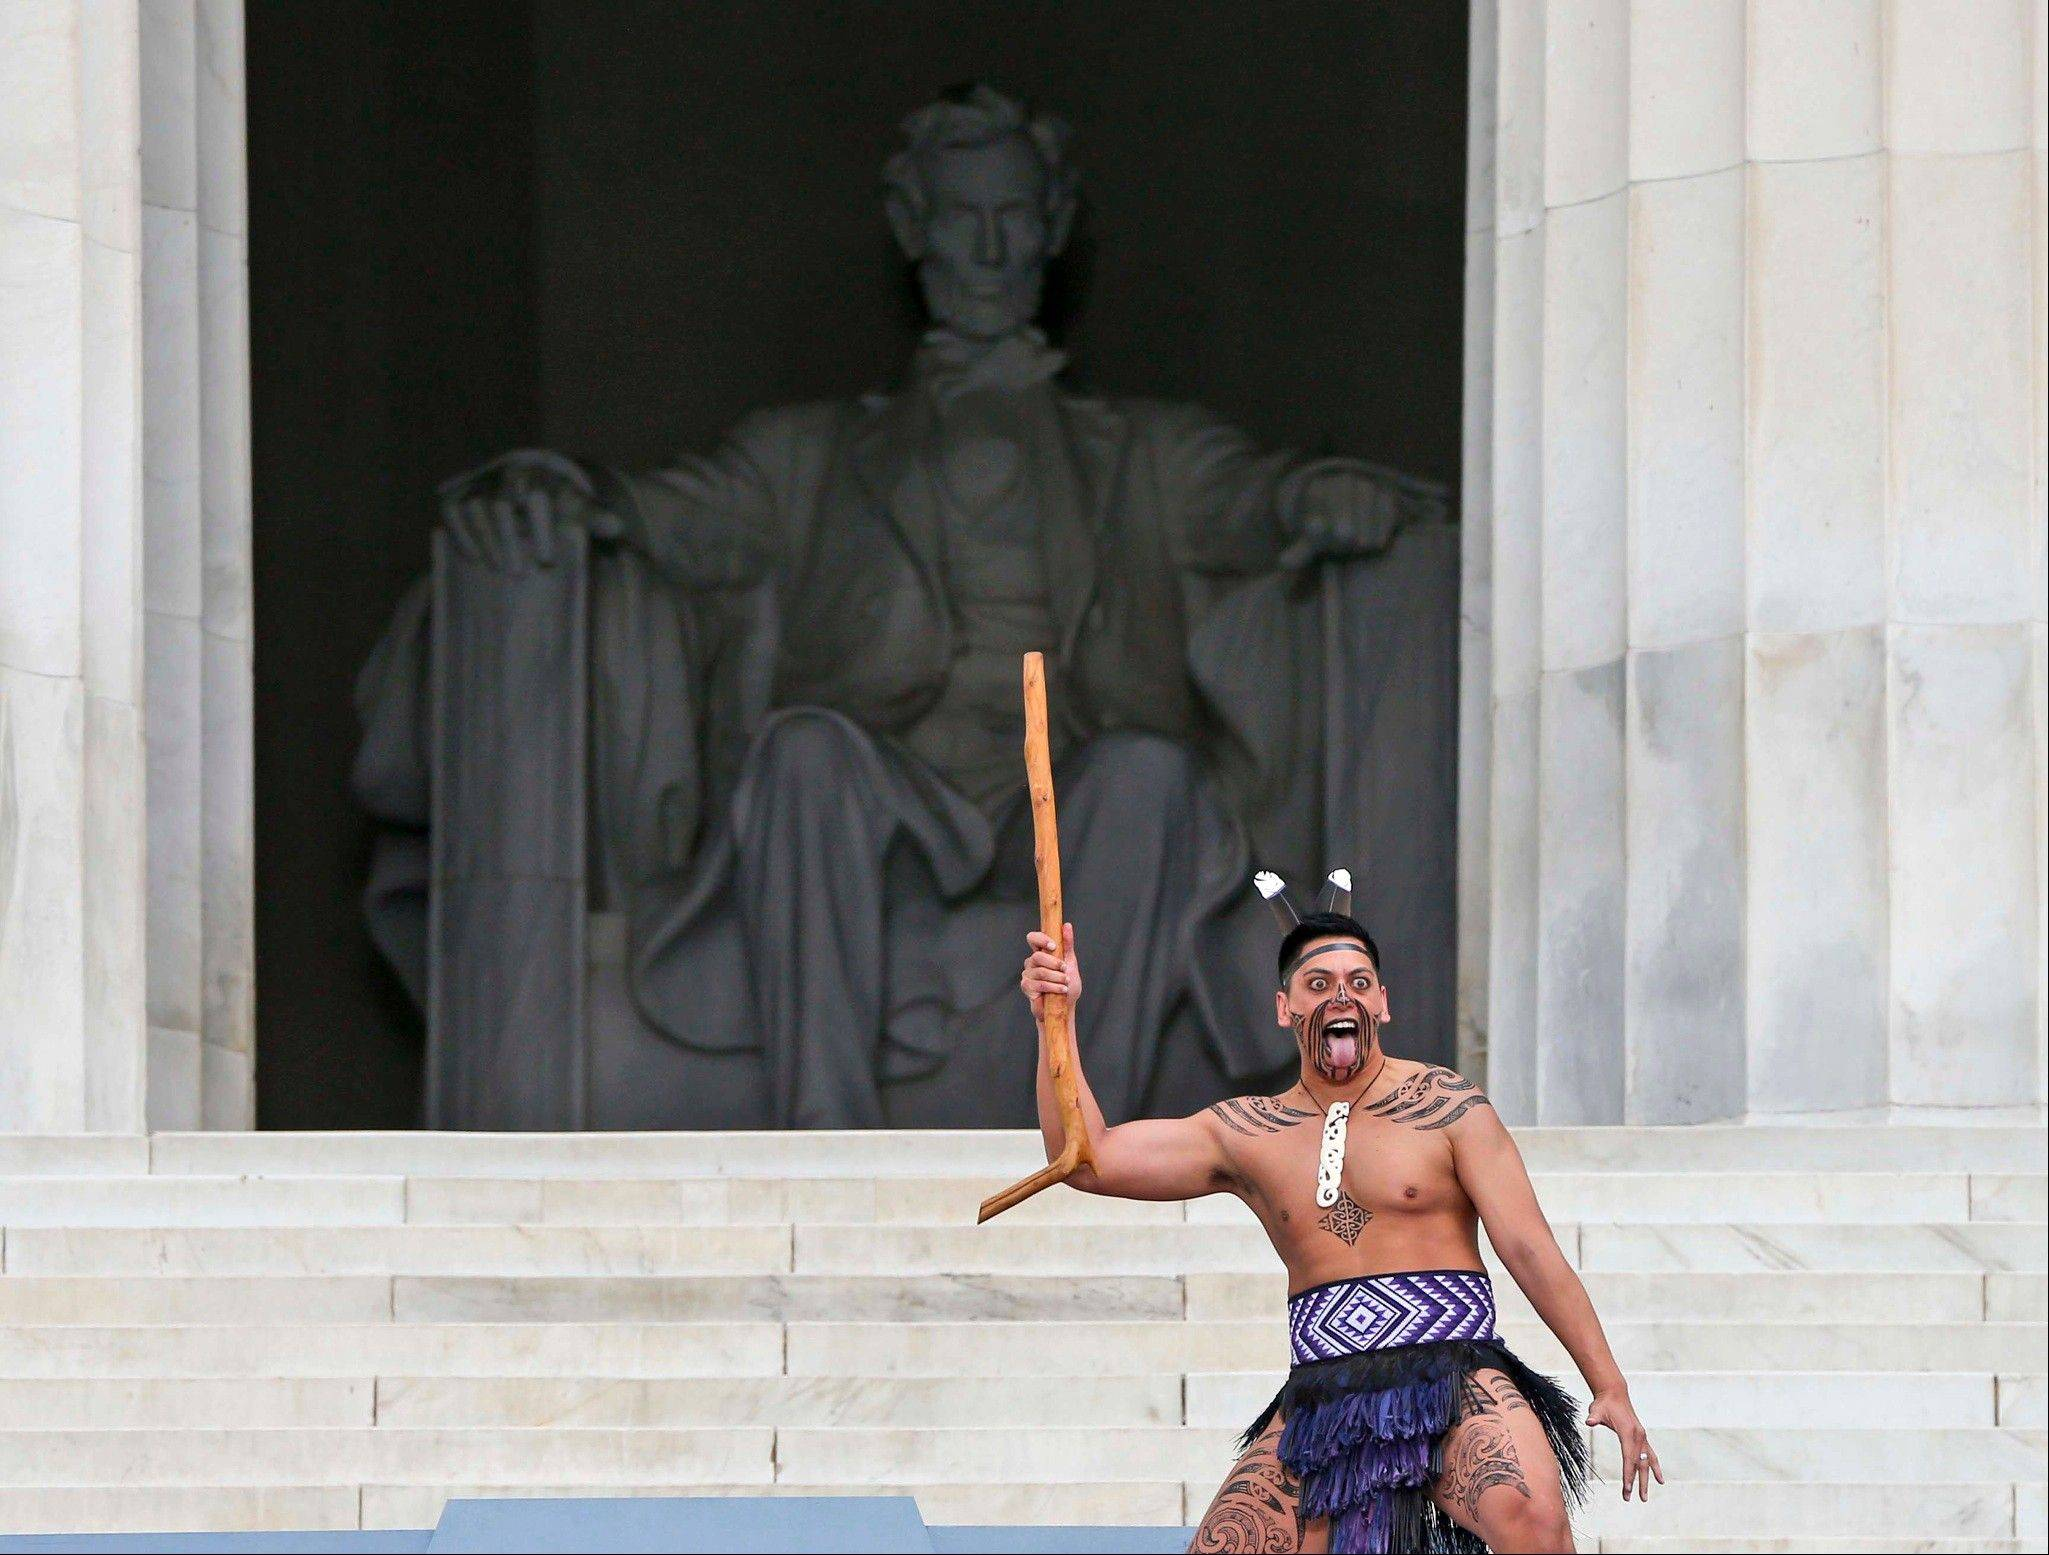 The Maori Dancers perform at the 50th Anniversary of the March on Washington .